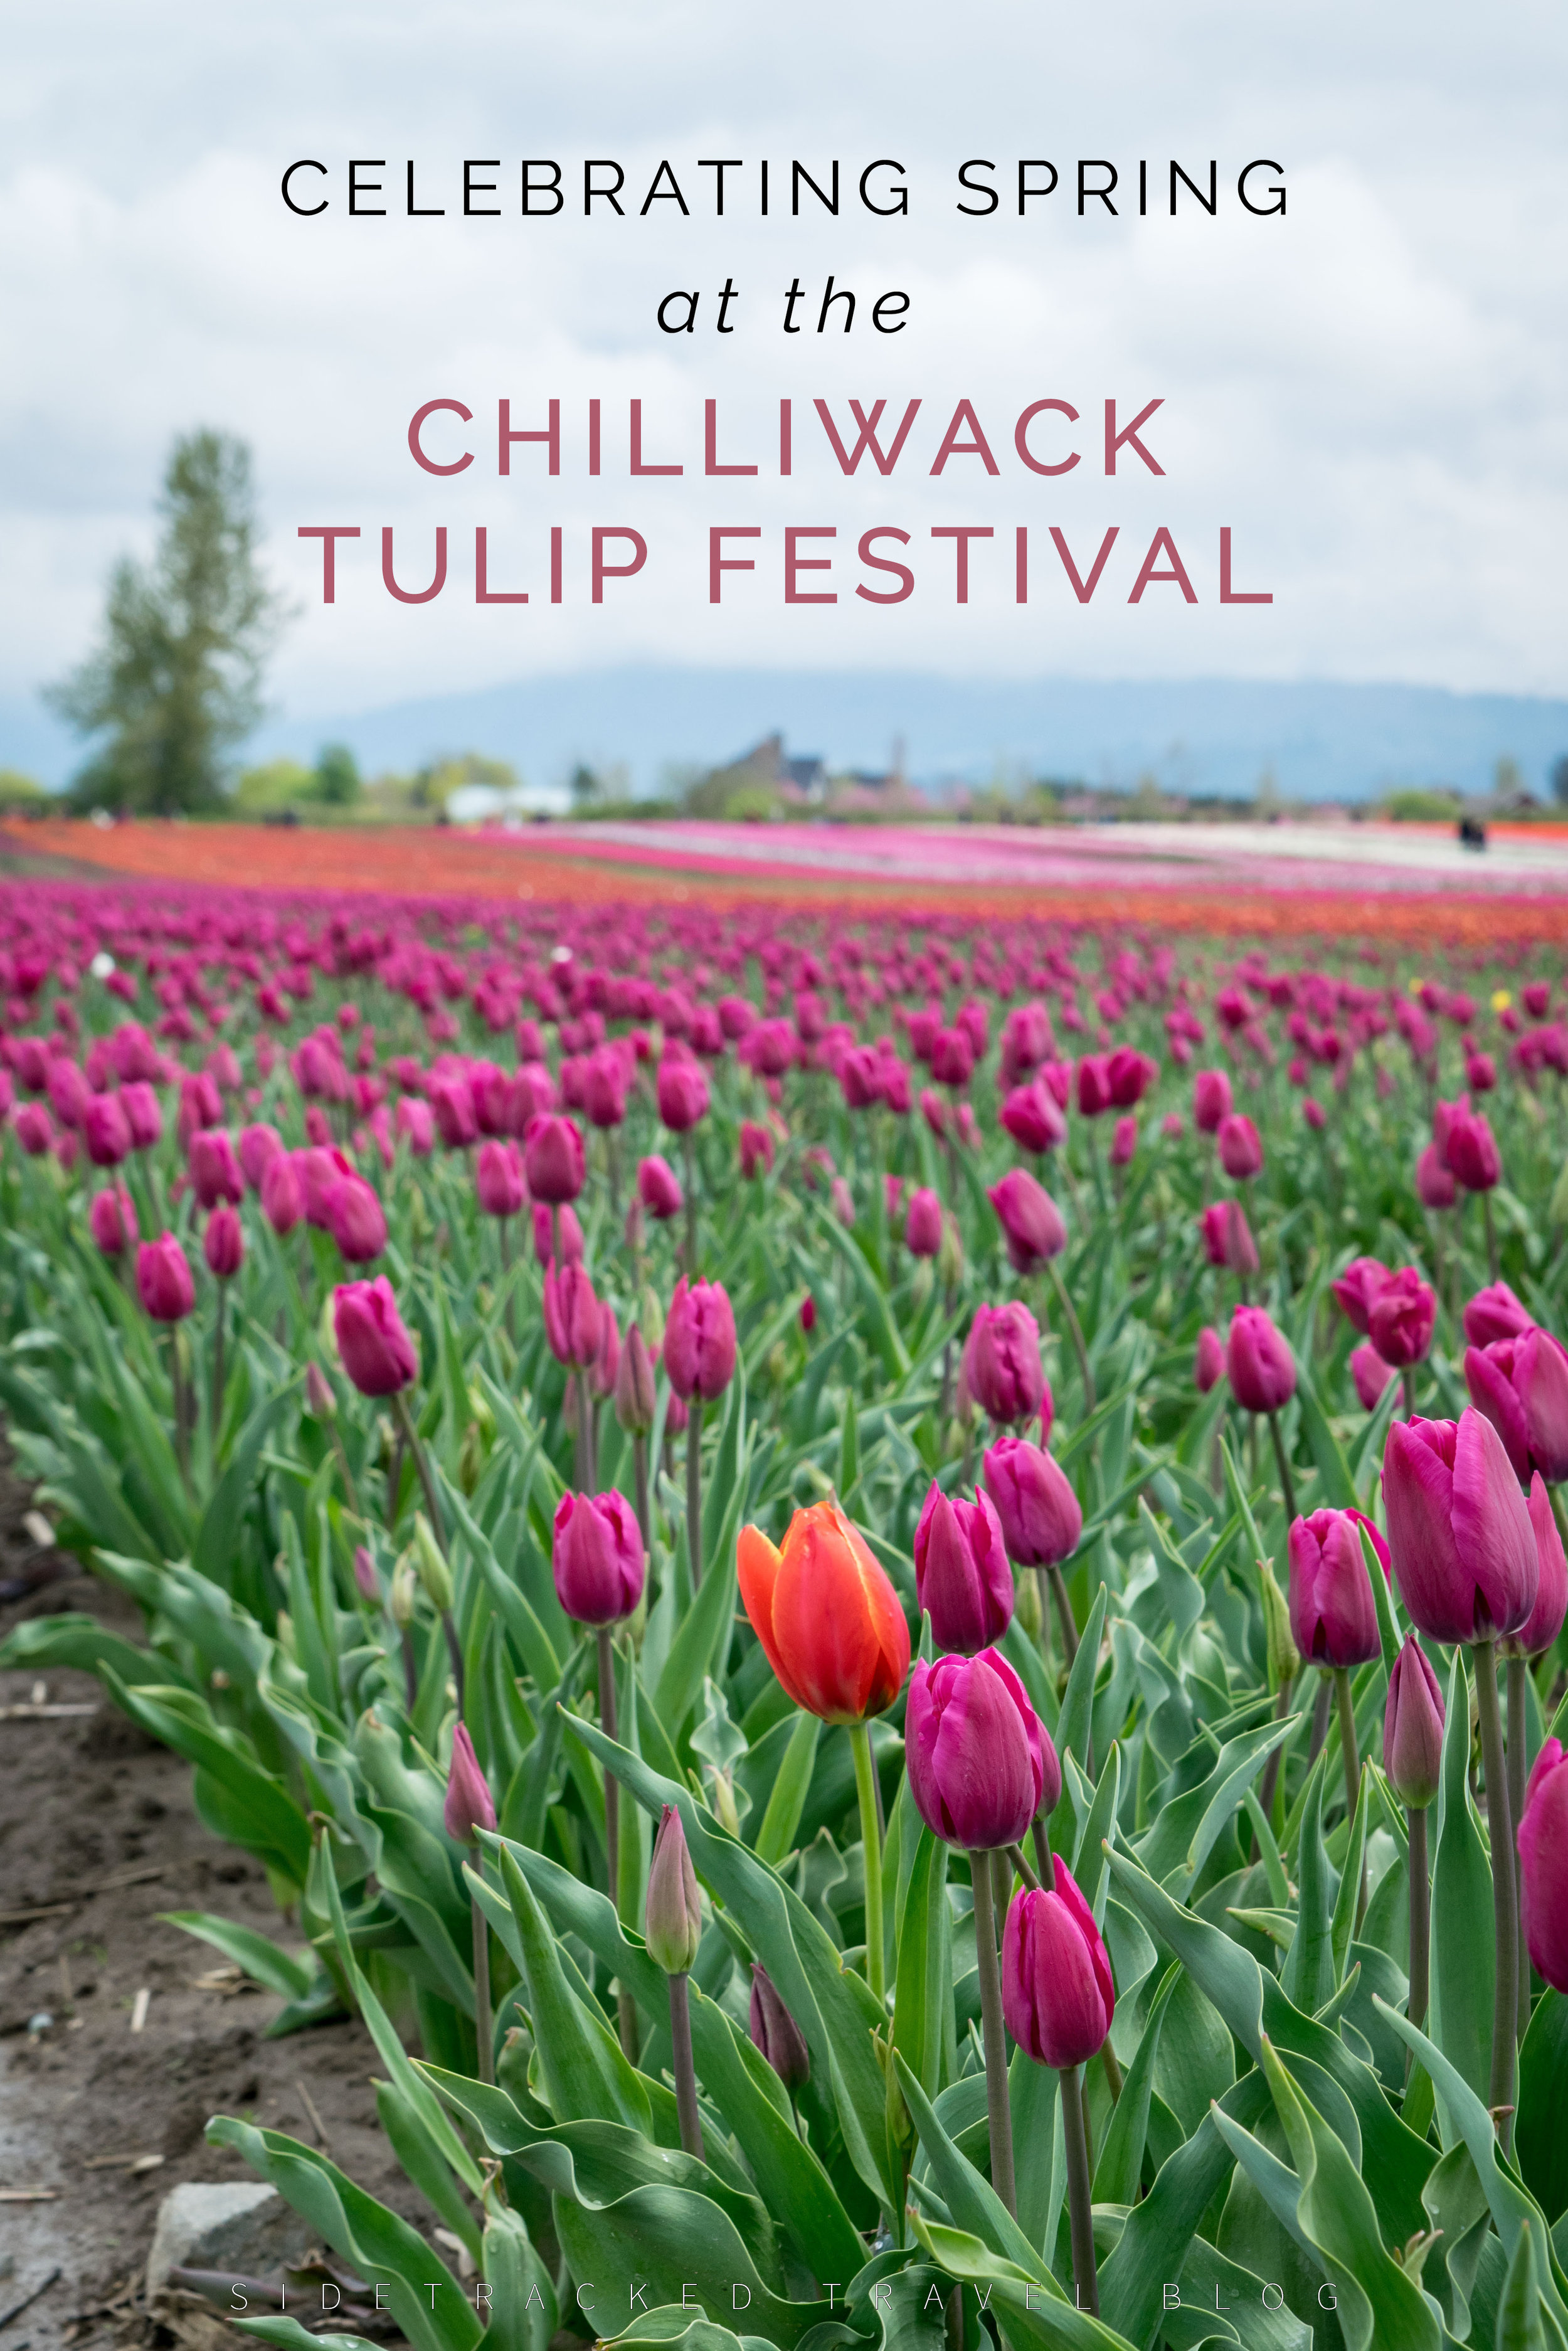 Rows upon rows of tulips in majestic magenta, bright white, hot pink, cheery yellow, and so many more colors can be found blooming each April at the Chilliwack Tulip Festival, located only an hour's drive outside of Vancouver. Wandering among the many rows of tulips makes for a lovely spring outing for the whole family to enjoy!